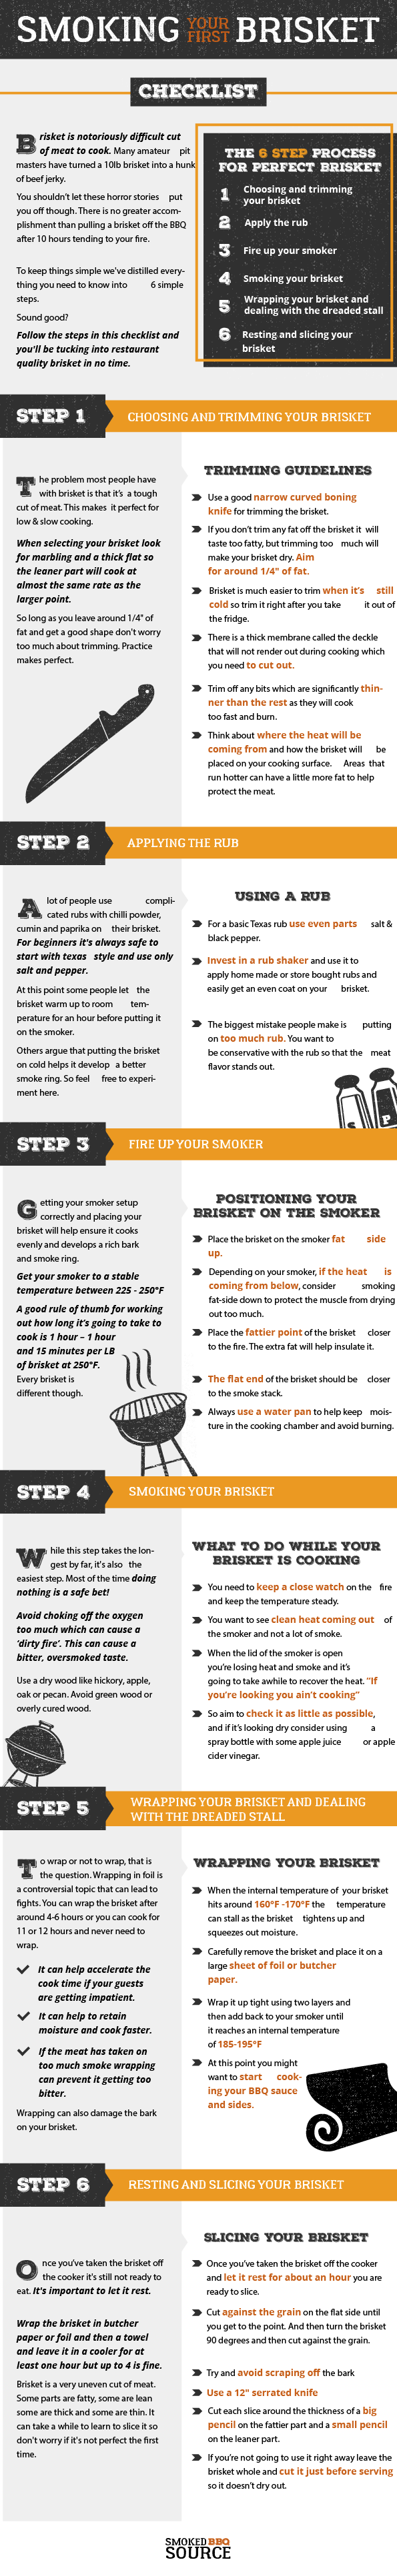 How Long To Smoke A Brisket